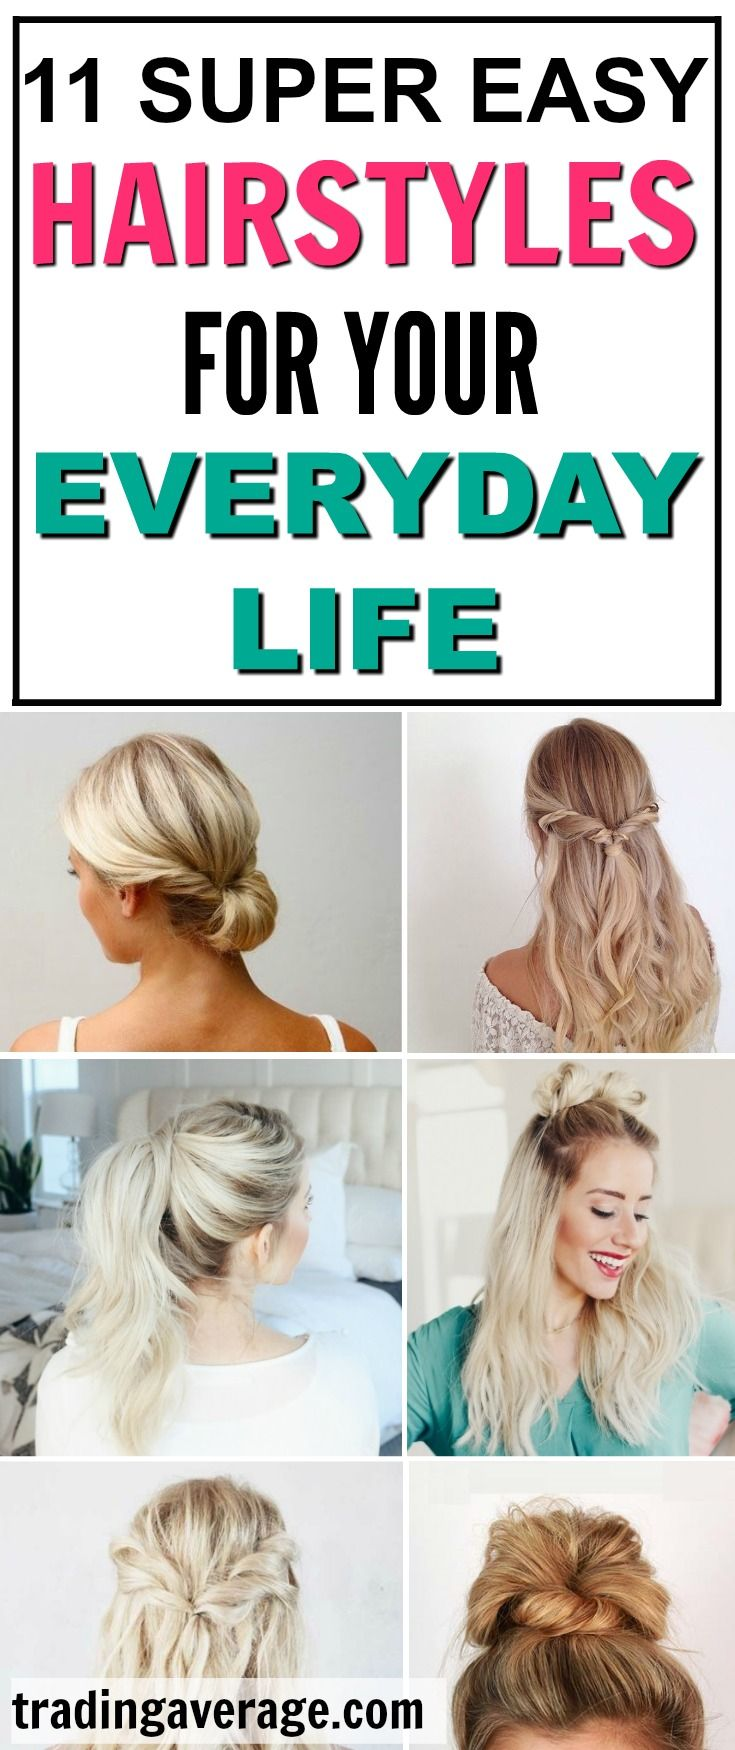 super easy hairstyles for everyday life best blogs pinterest